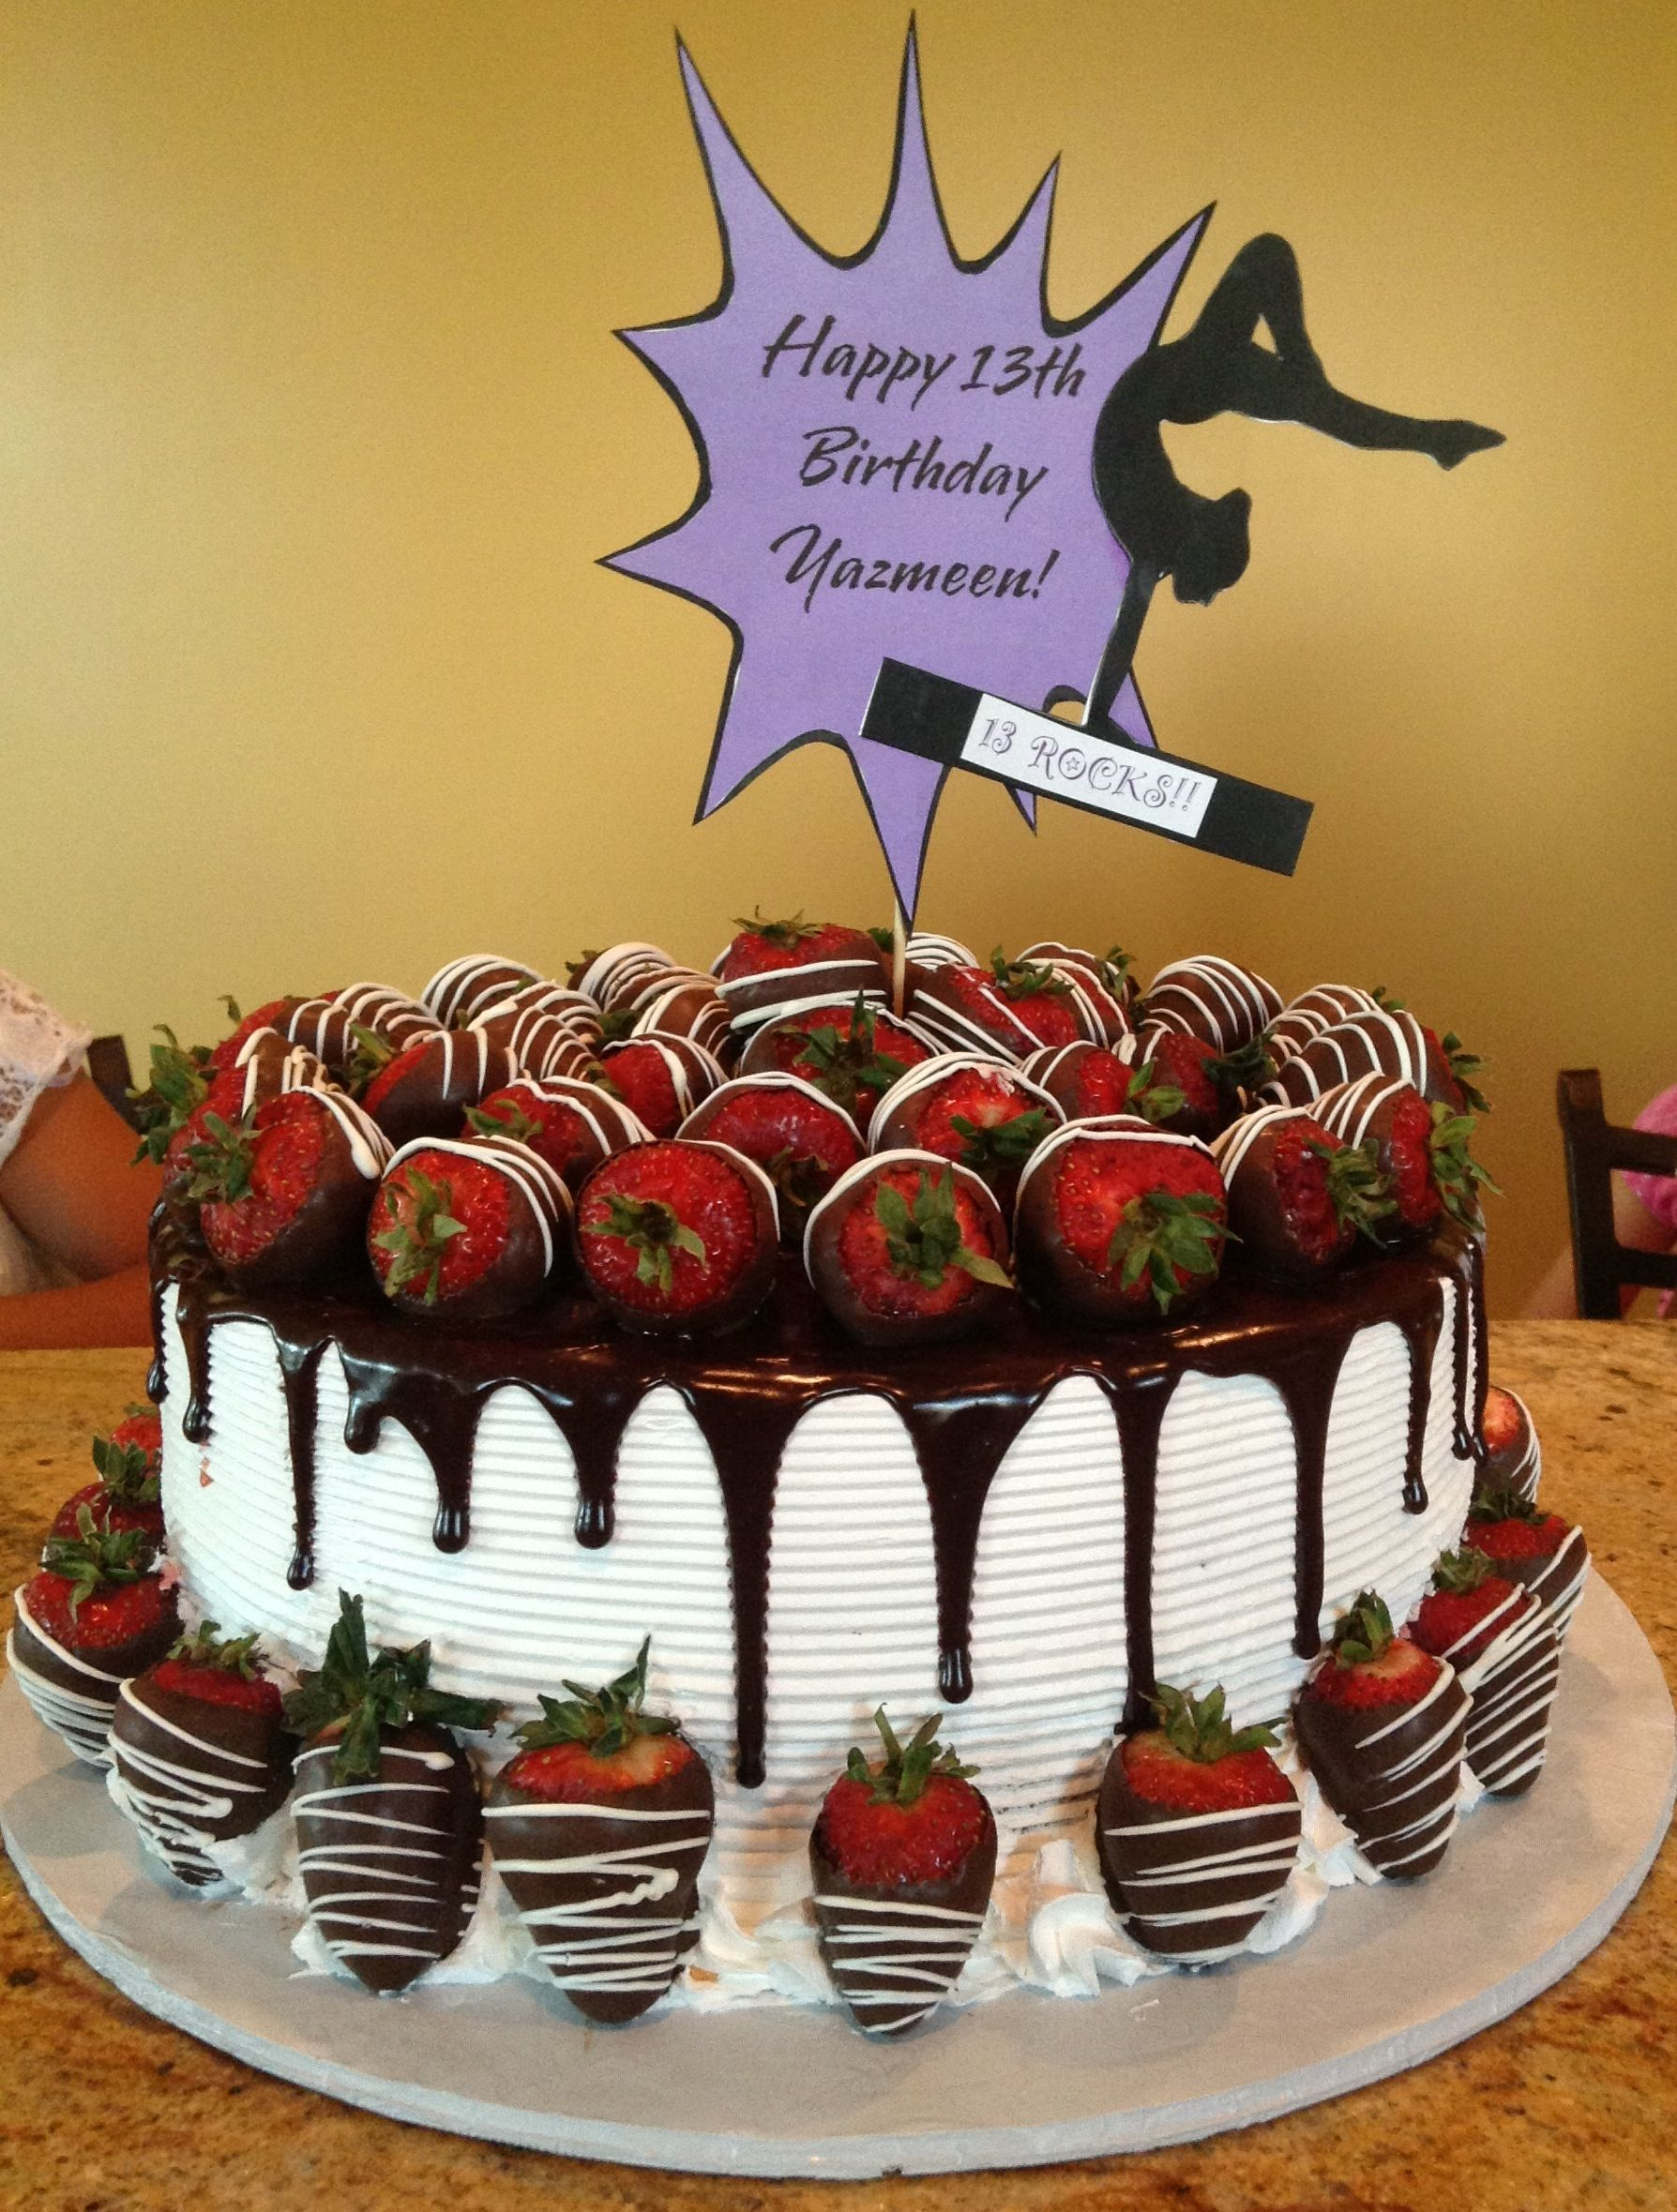 Awesome The Best Birthday Cake Ever Chocolate Covered Strawberry Funny Birthday Cards Online Overcheapnameinfo